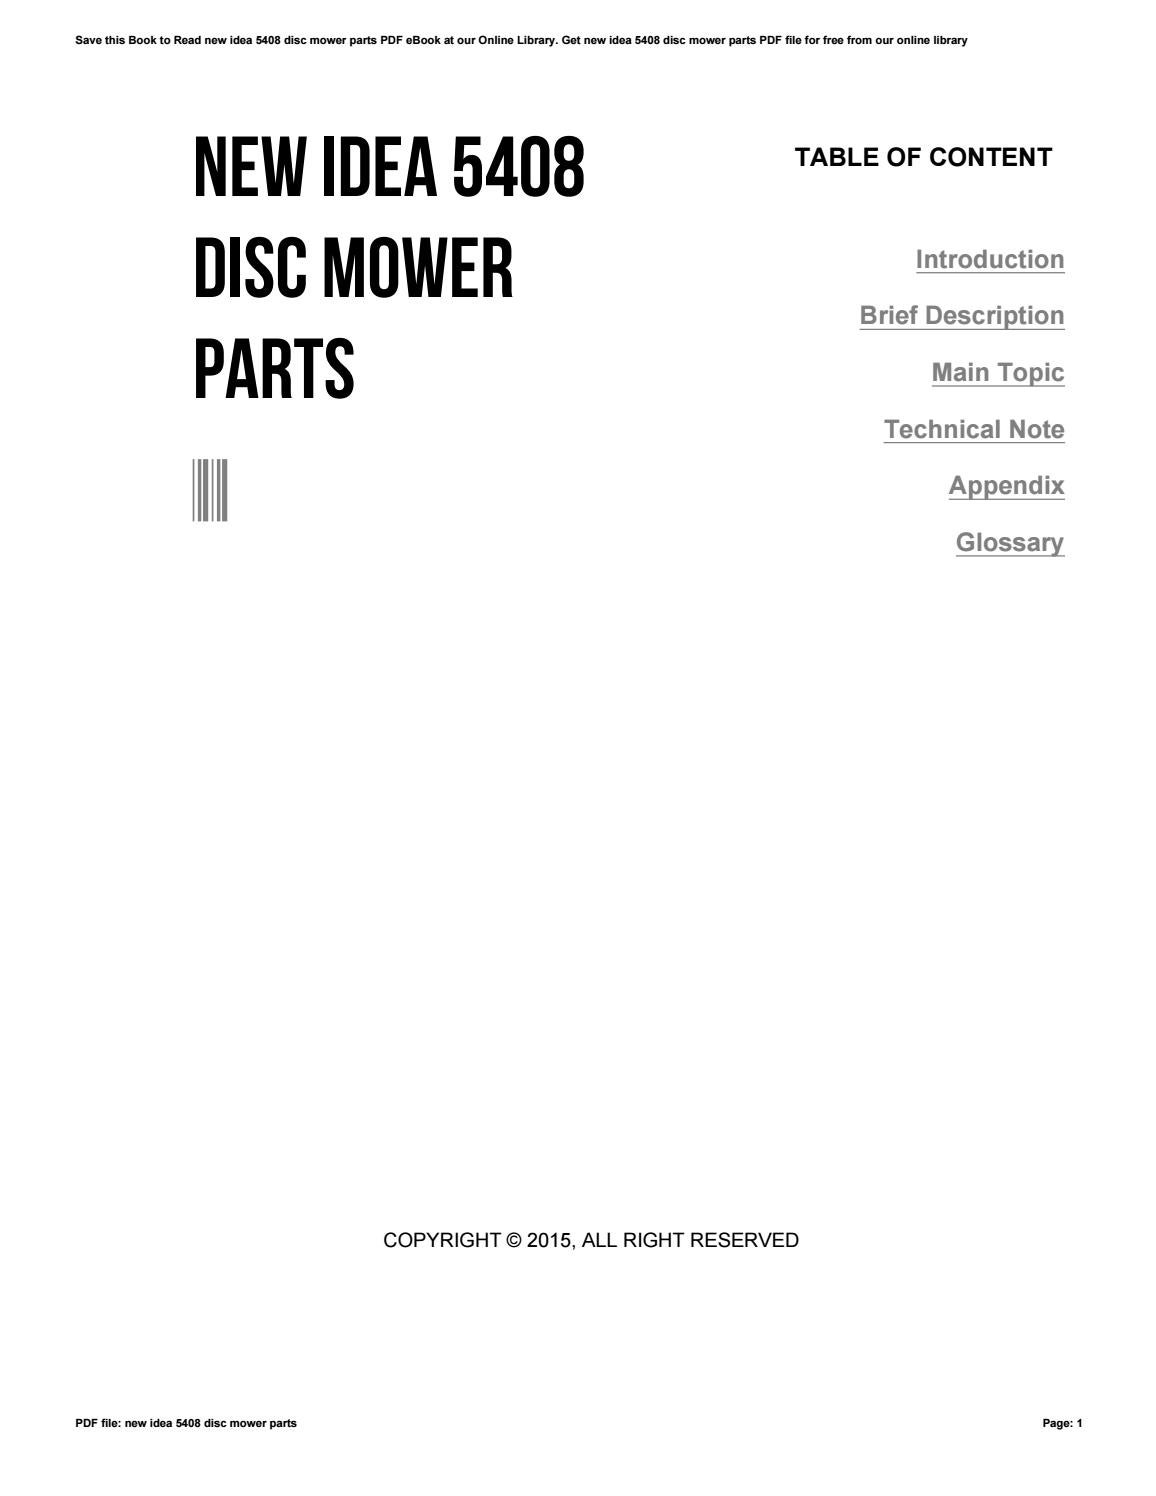 New idea 5408 disc mower parts by e4469 - issuu. repair manual ...